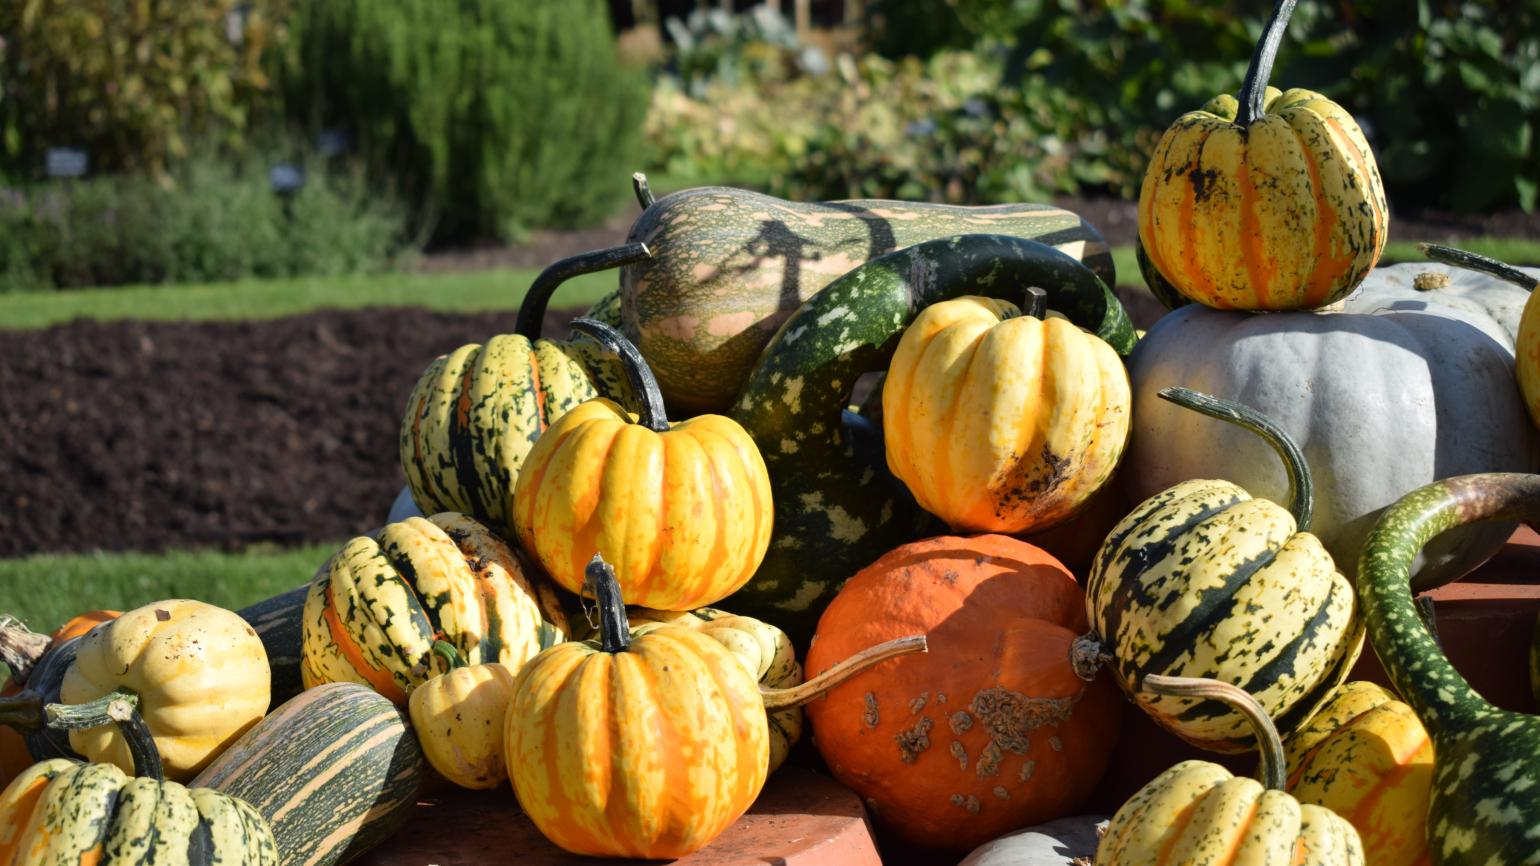 Autumn's pumpkins in our Kitchen Garden